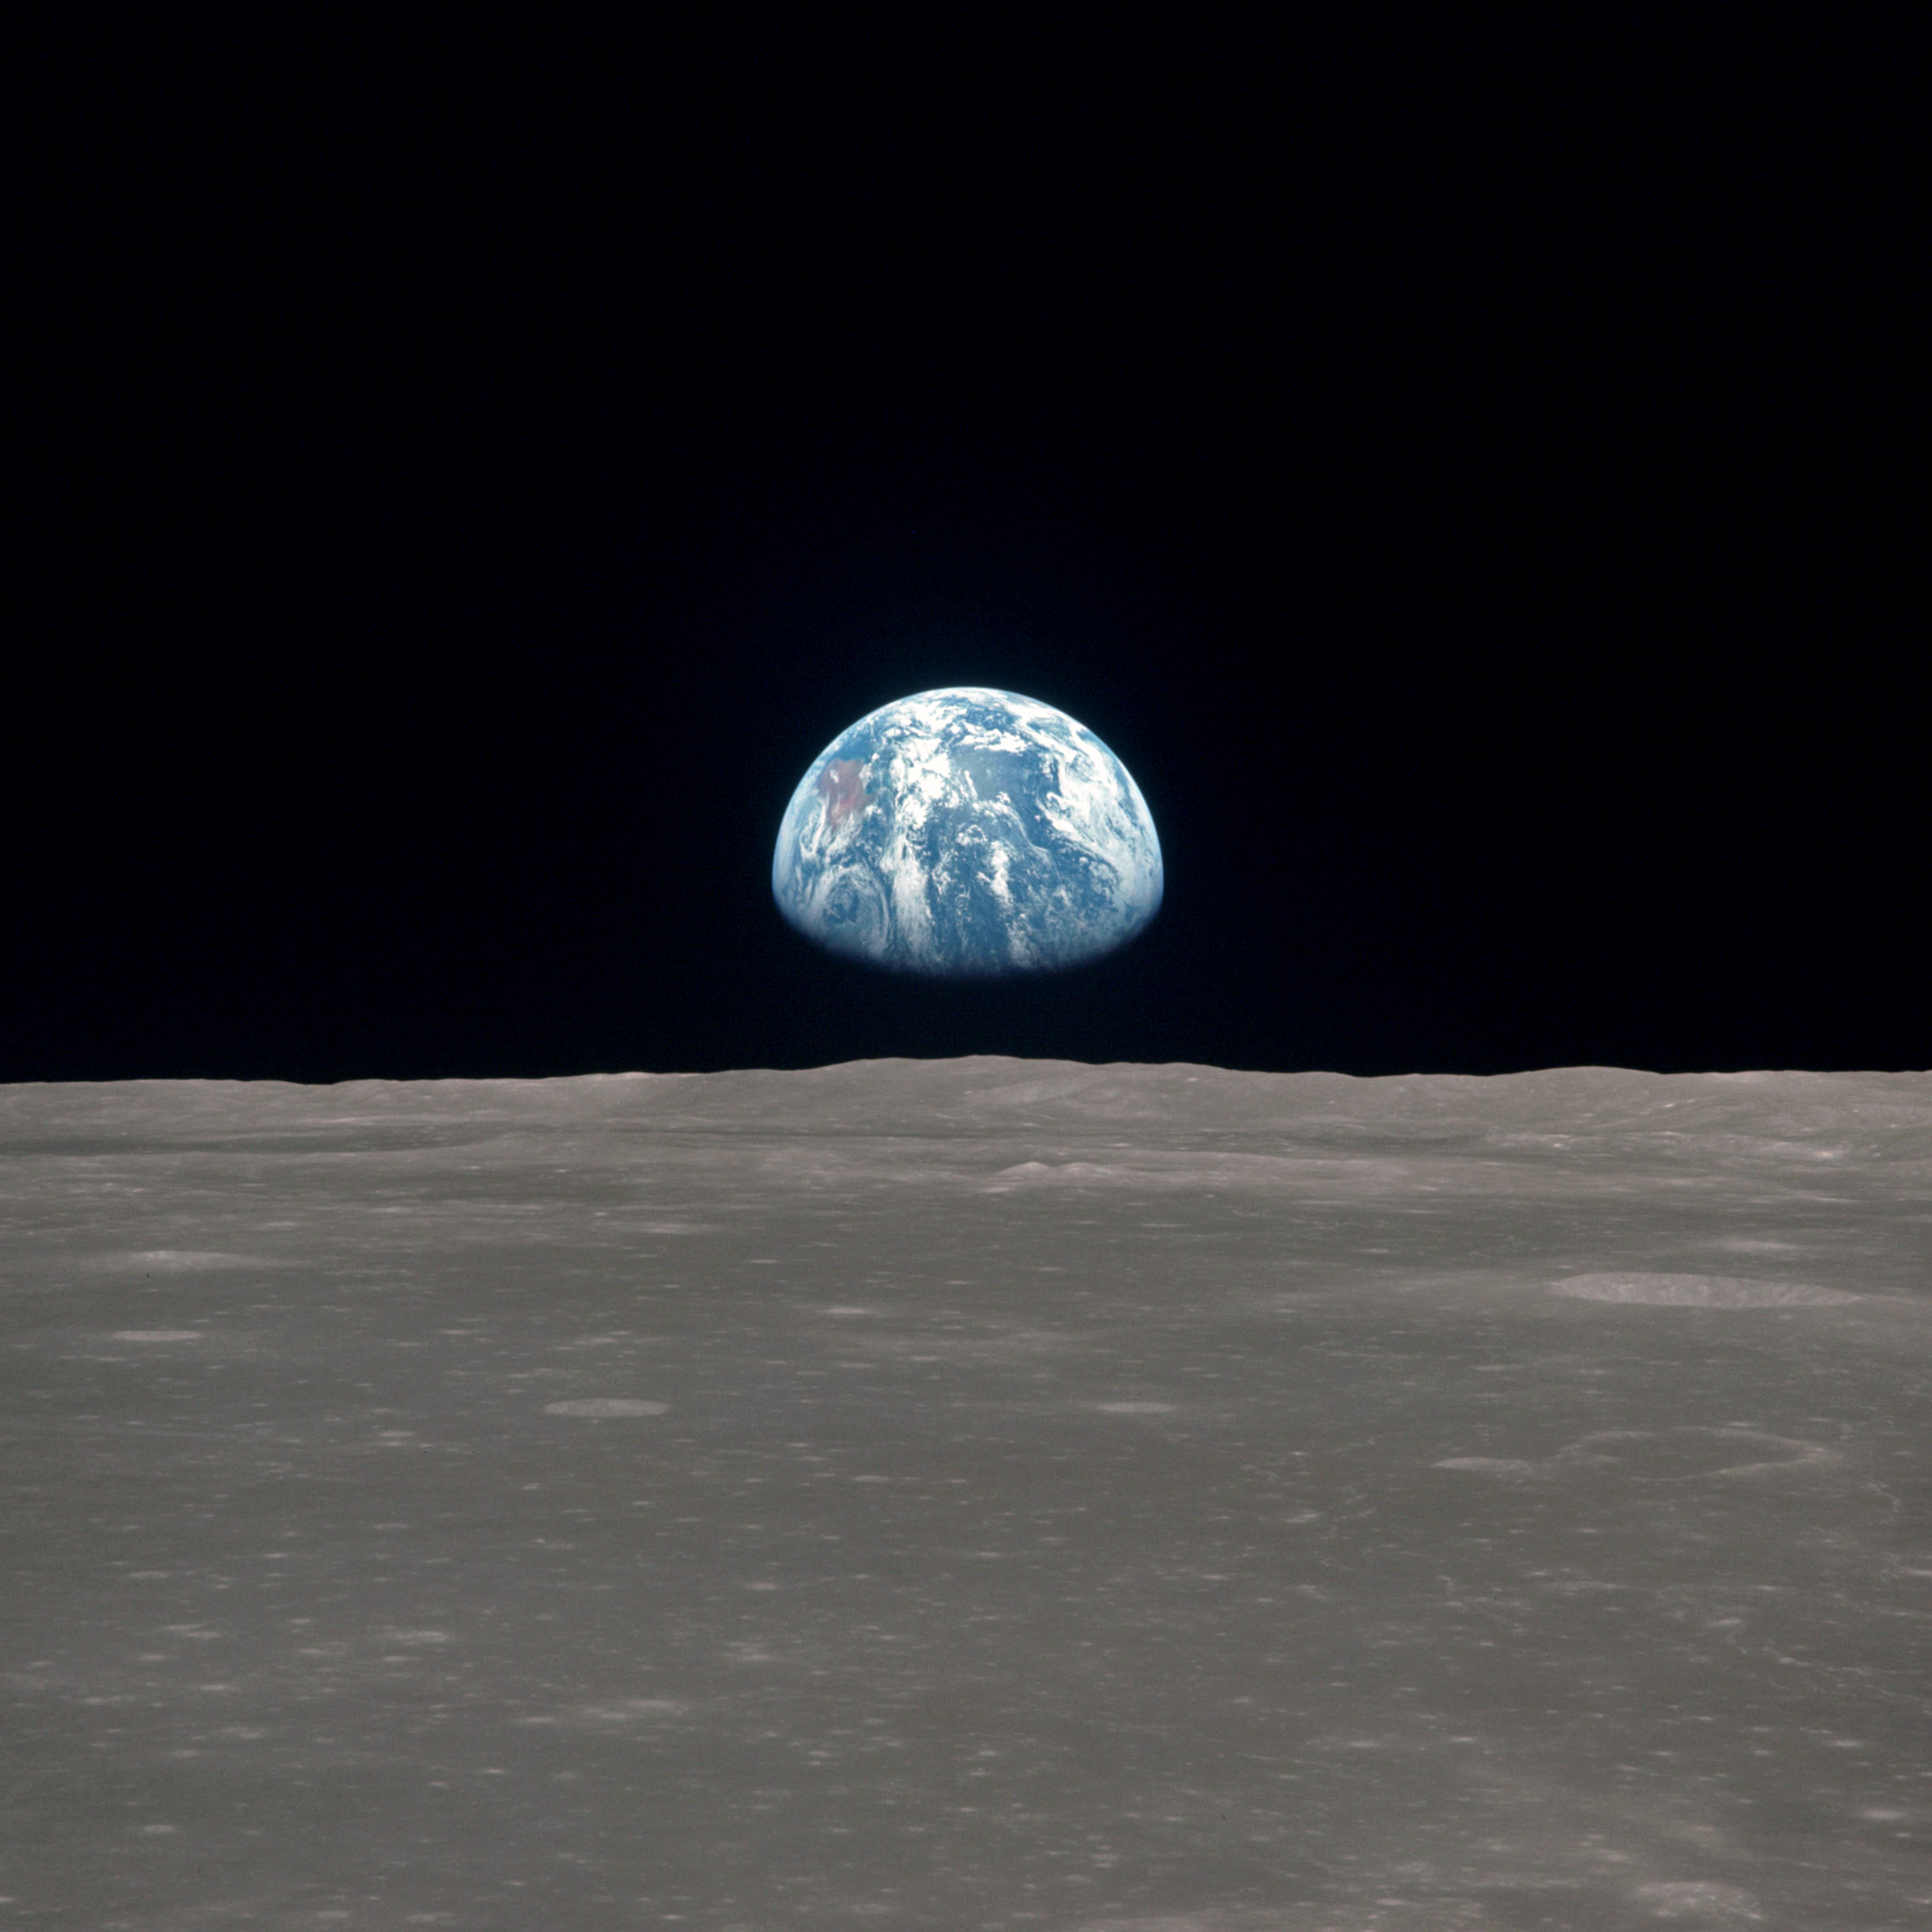 nasa - as11-44-6550 planet earth seen from the moon ipad wallpaper